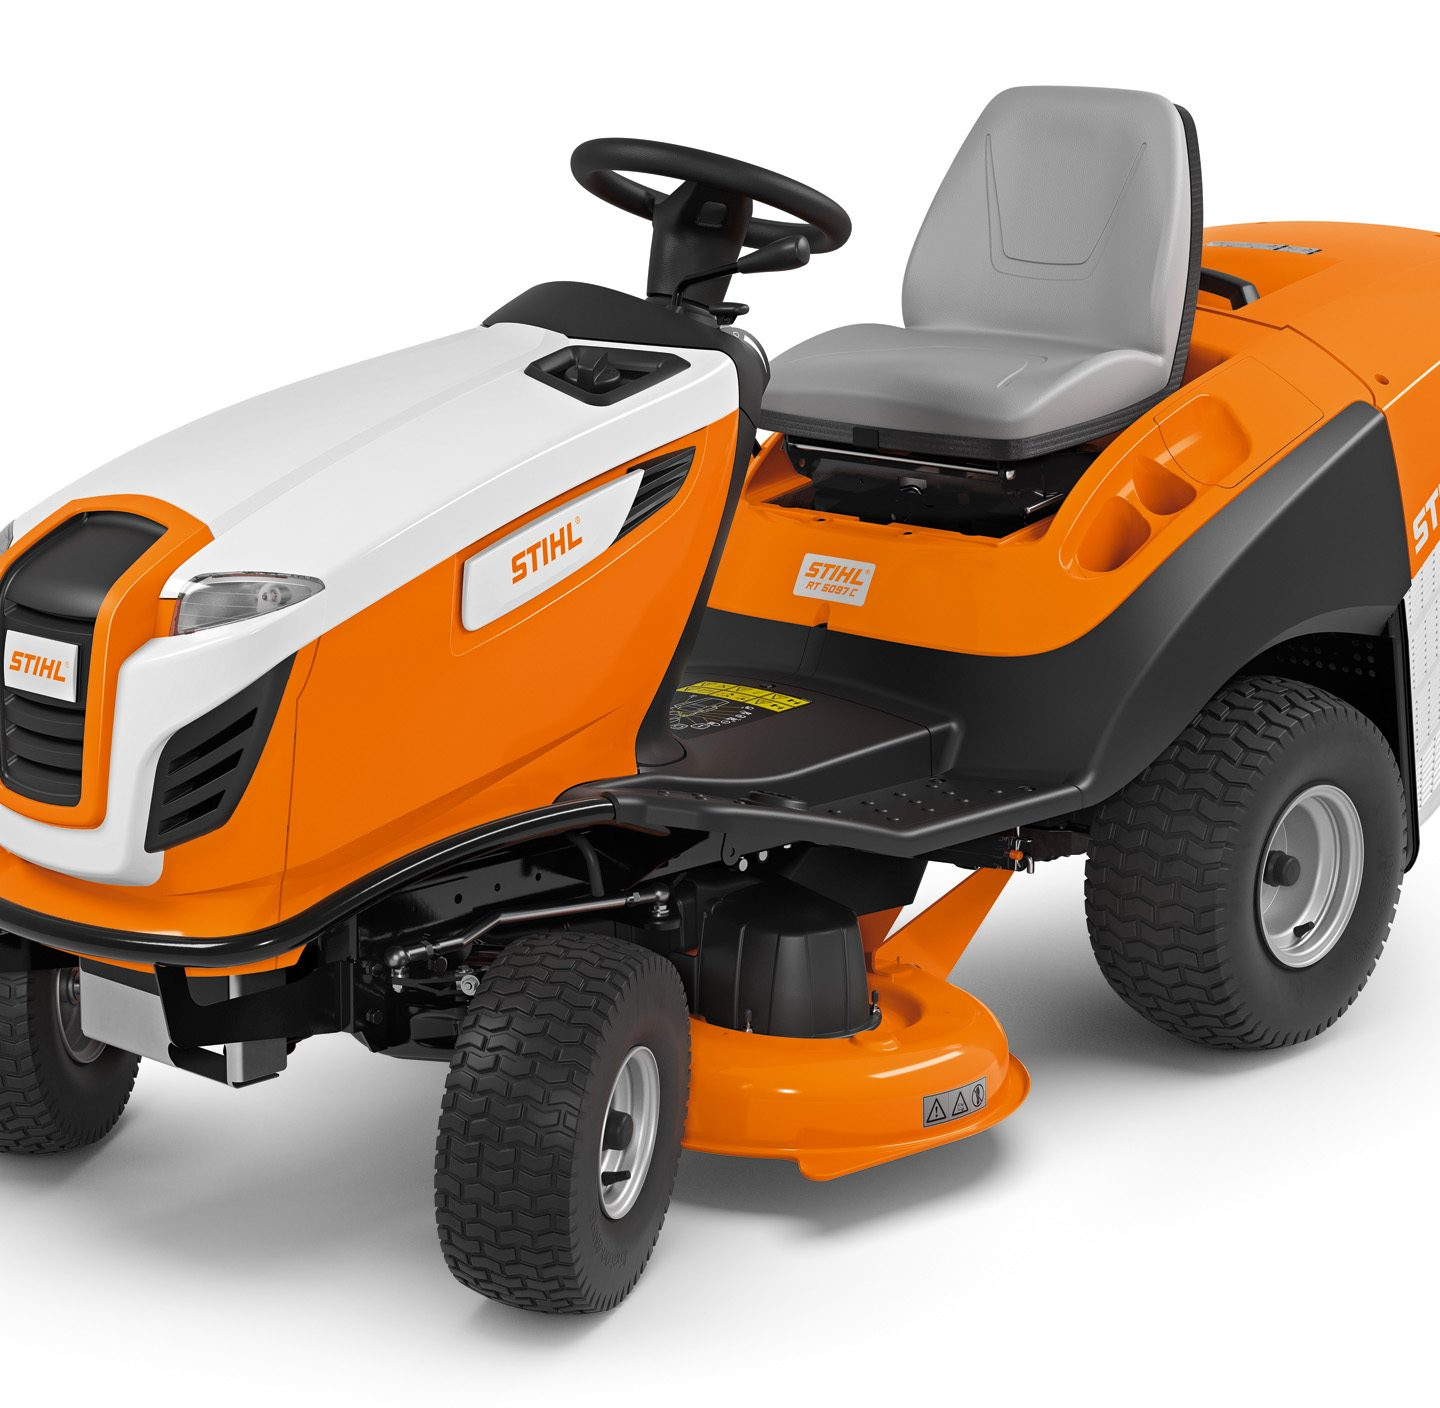 RT 5097 C - COMPACT LAWN TRACTOR WITH EXCELLENT MOWING PERFORMANCE